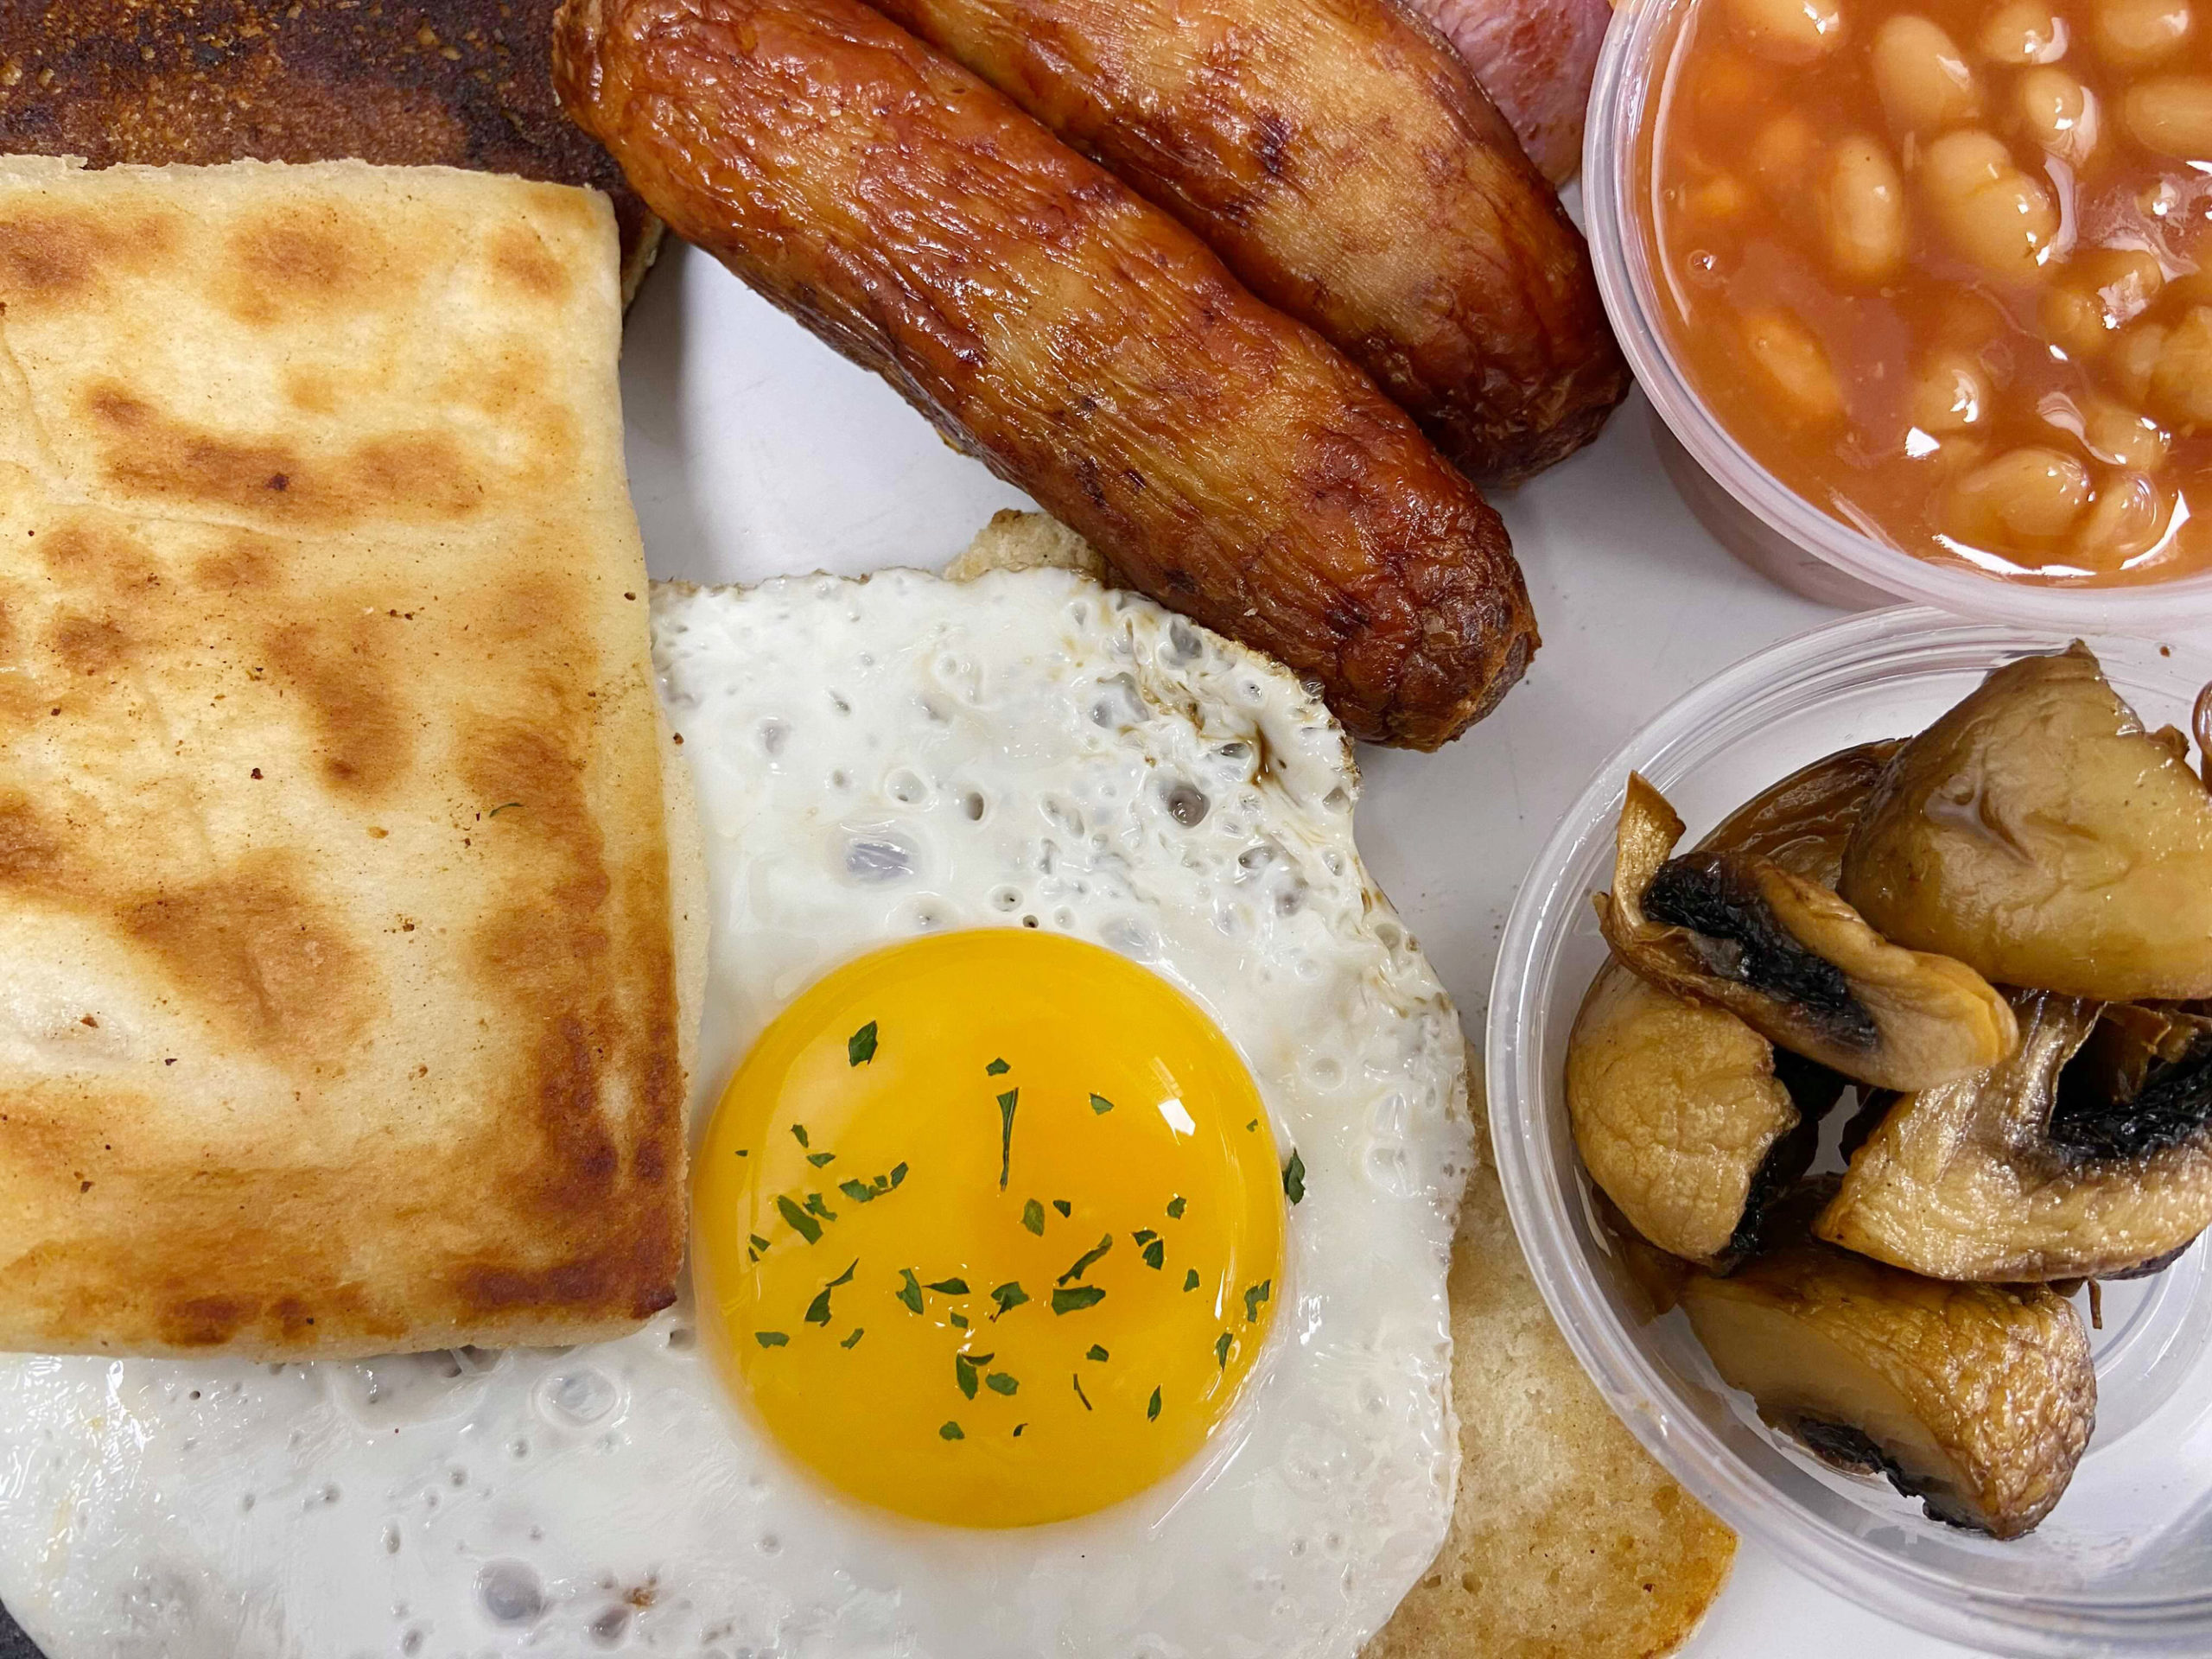 FRY UP! Use Your Loaf\'s Ulster fry is a favourite